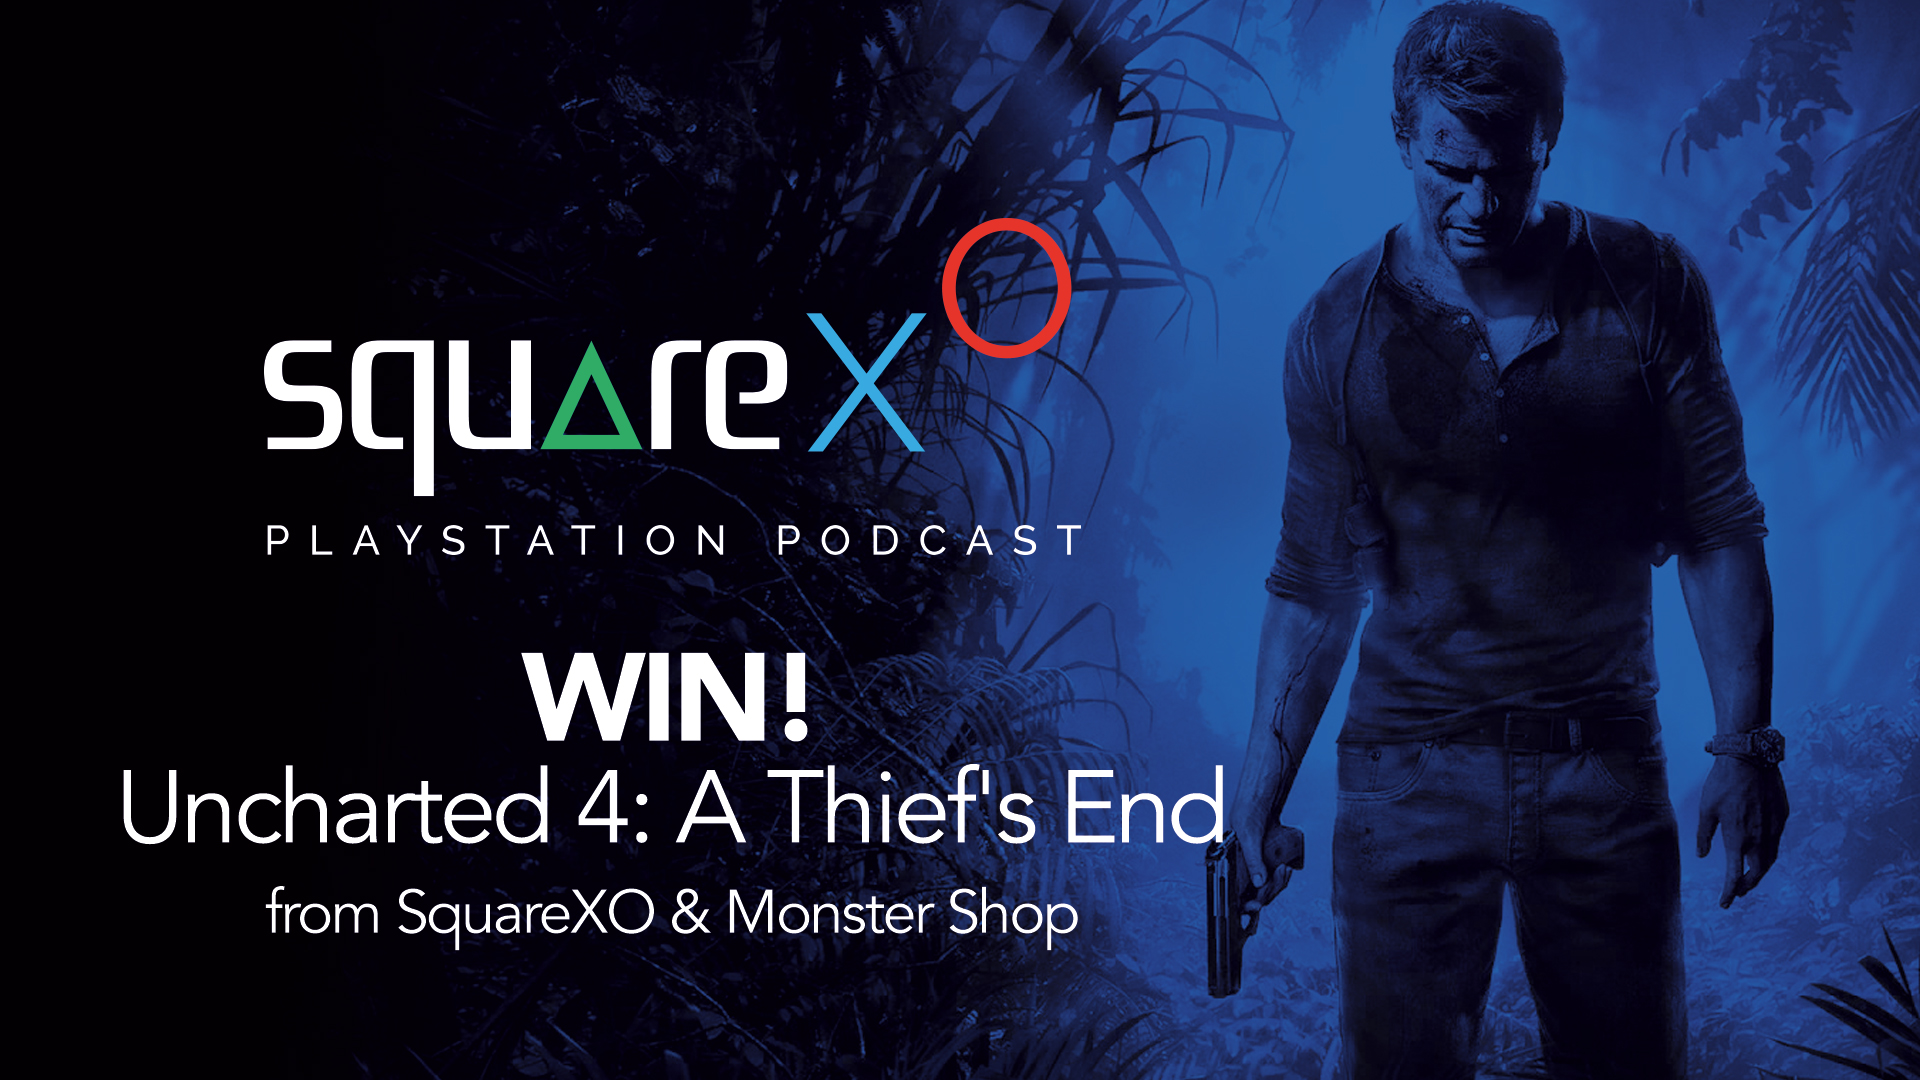 WIN Uncharted 4: A Thief's End